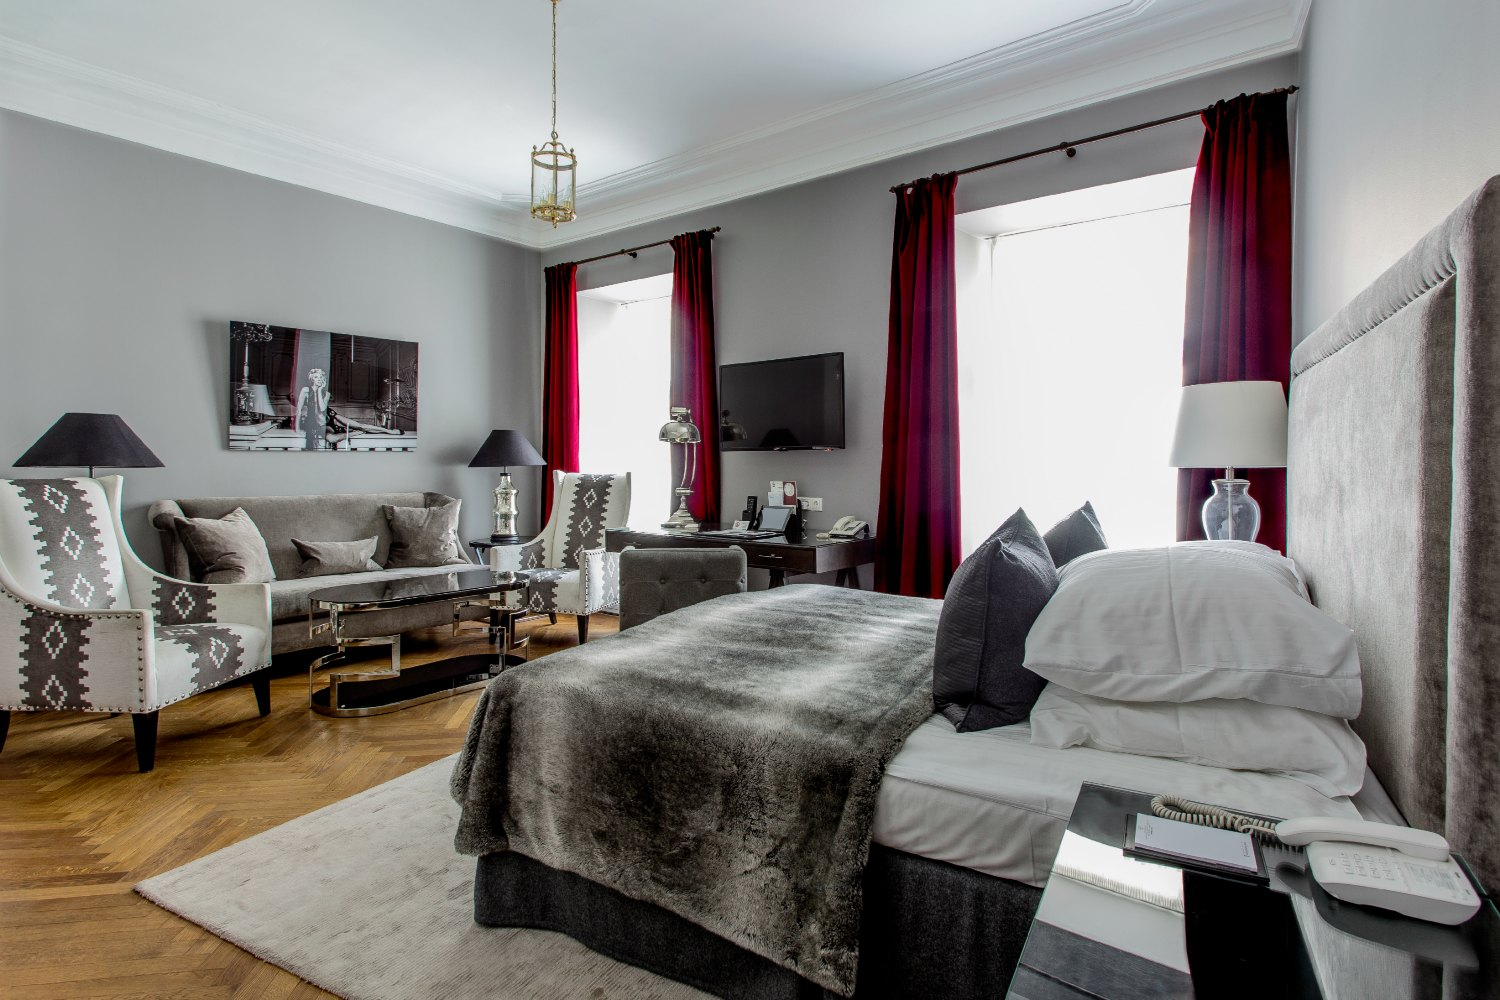 Hotel St Petersbourg In Tallinn